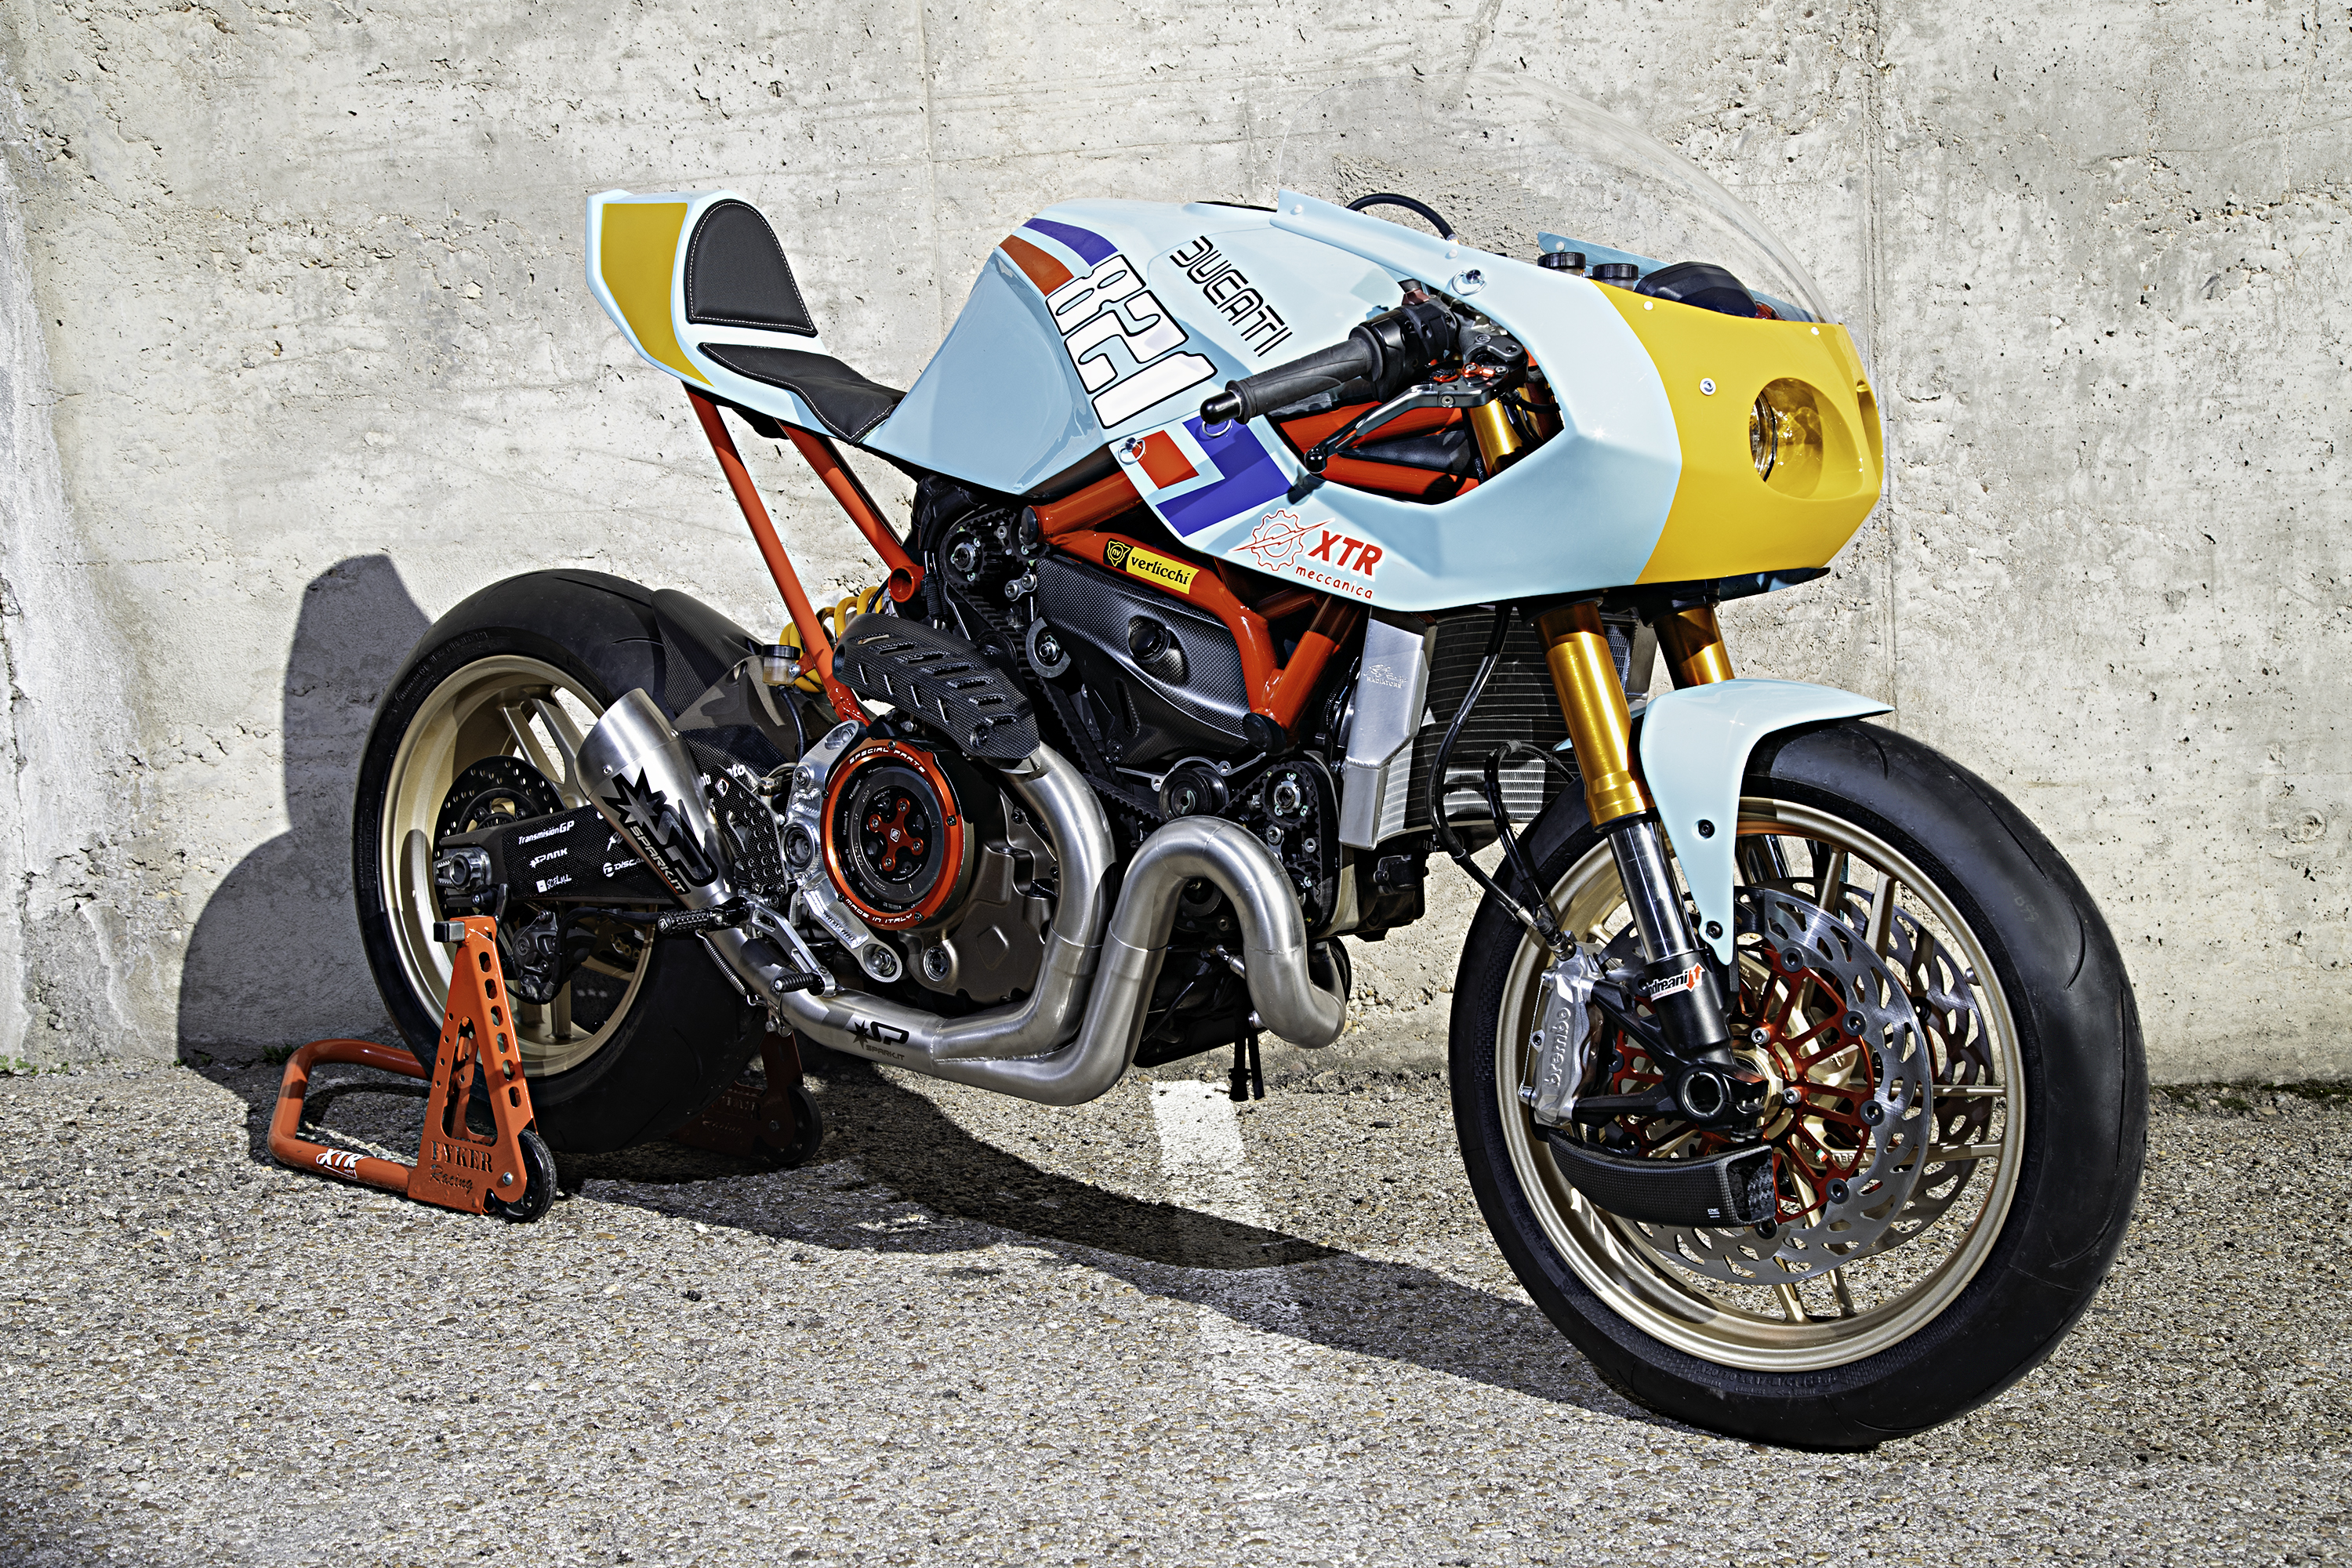 XTR-Pepo_Ducati_Monster_821